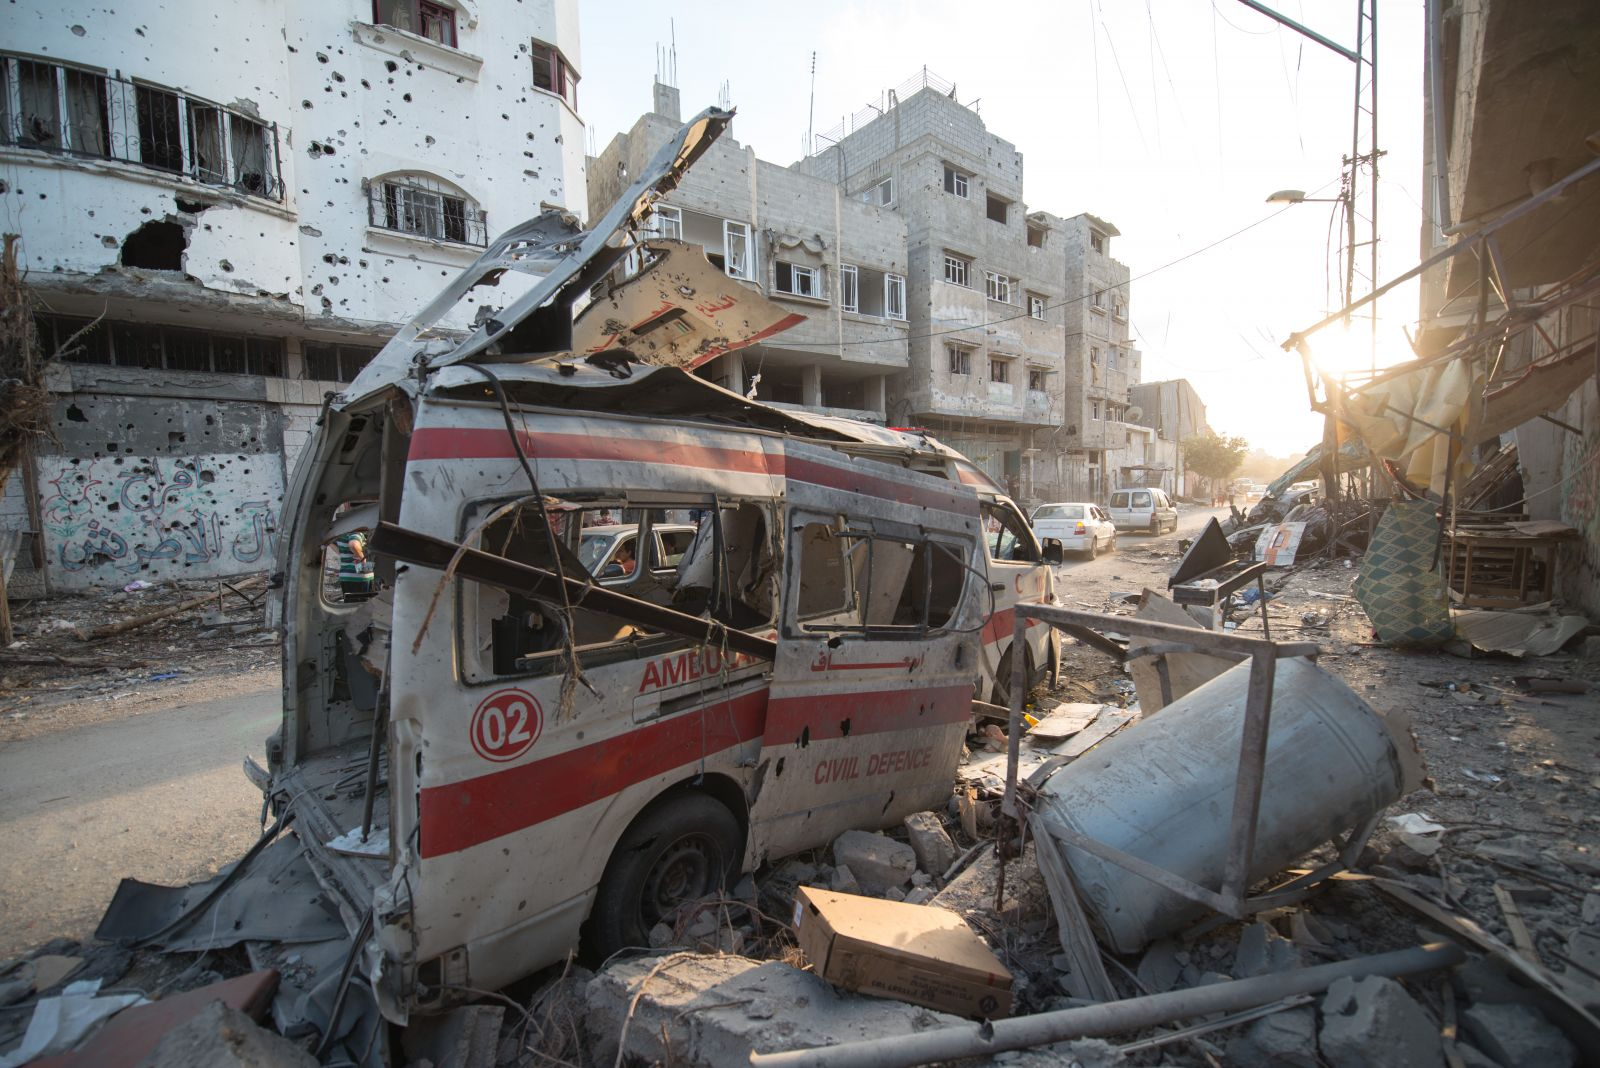 Destroyed_ambulance_in_the_CIty_of_Shijaiyah_in_the_Gaza_Strip.jpg